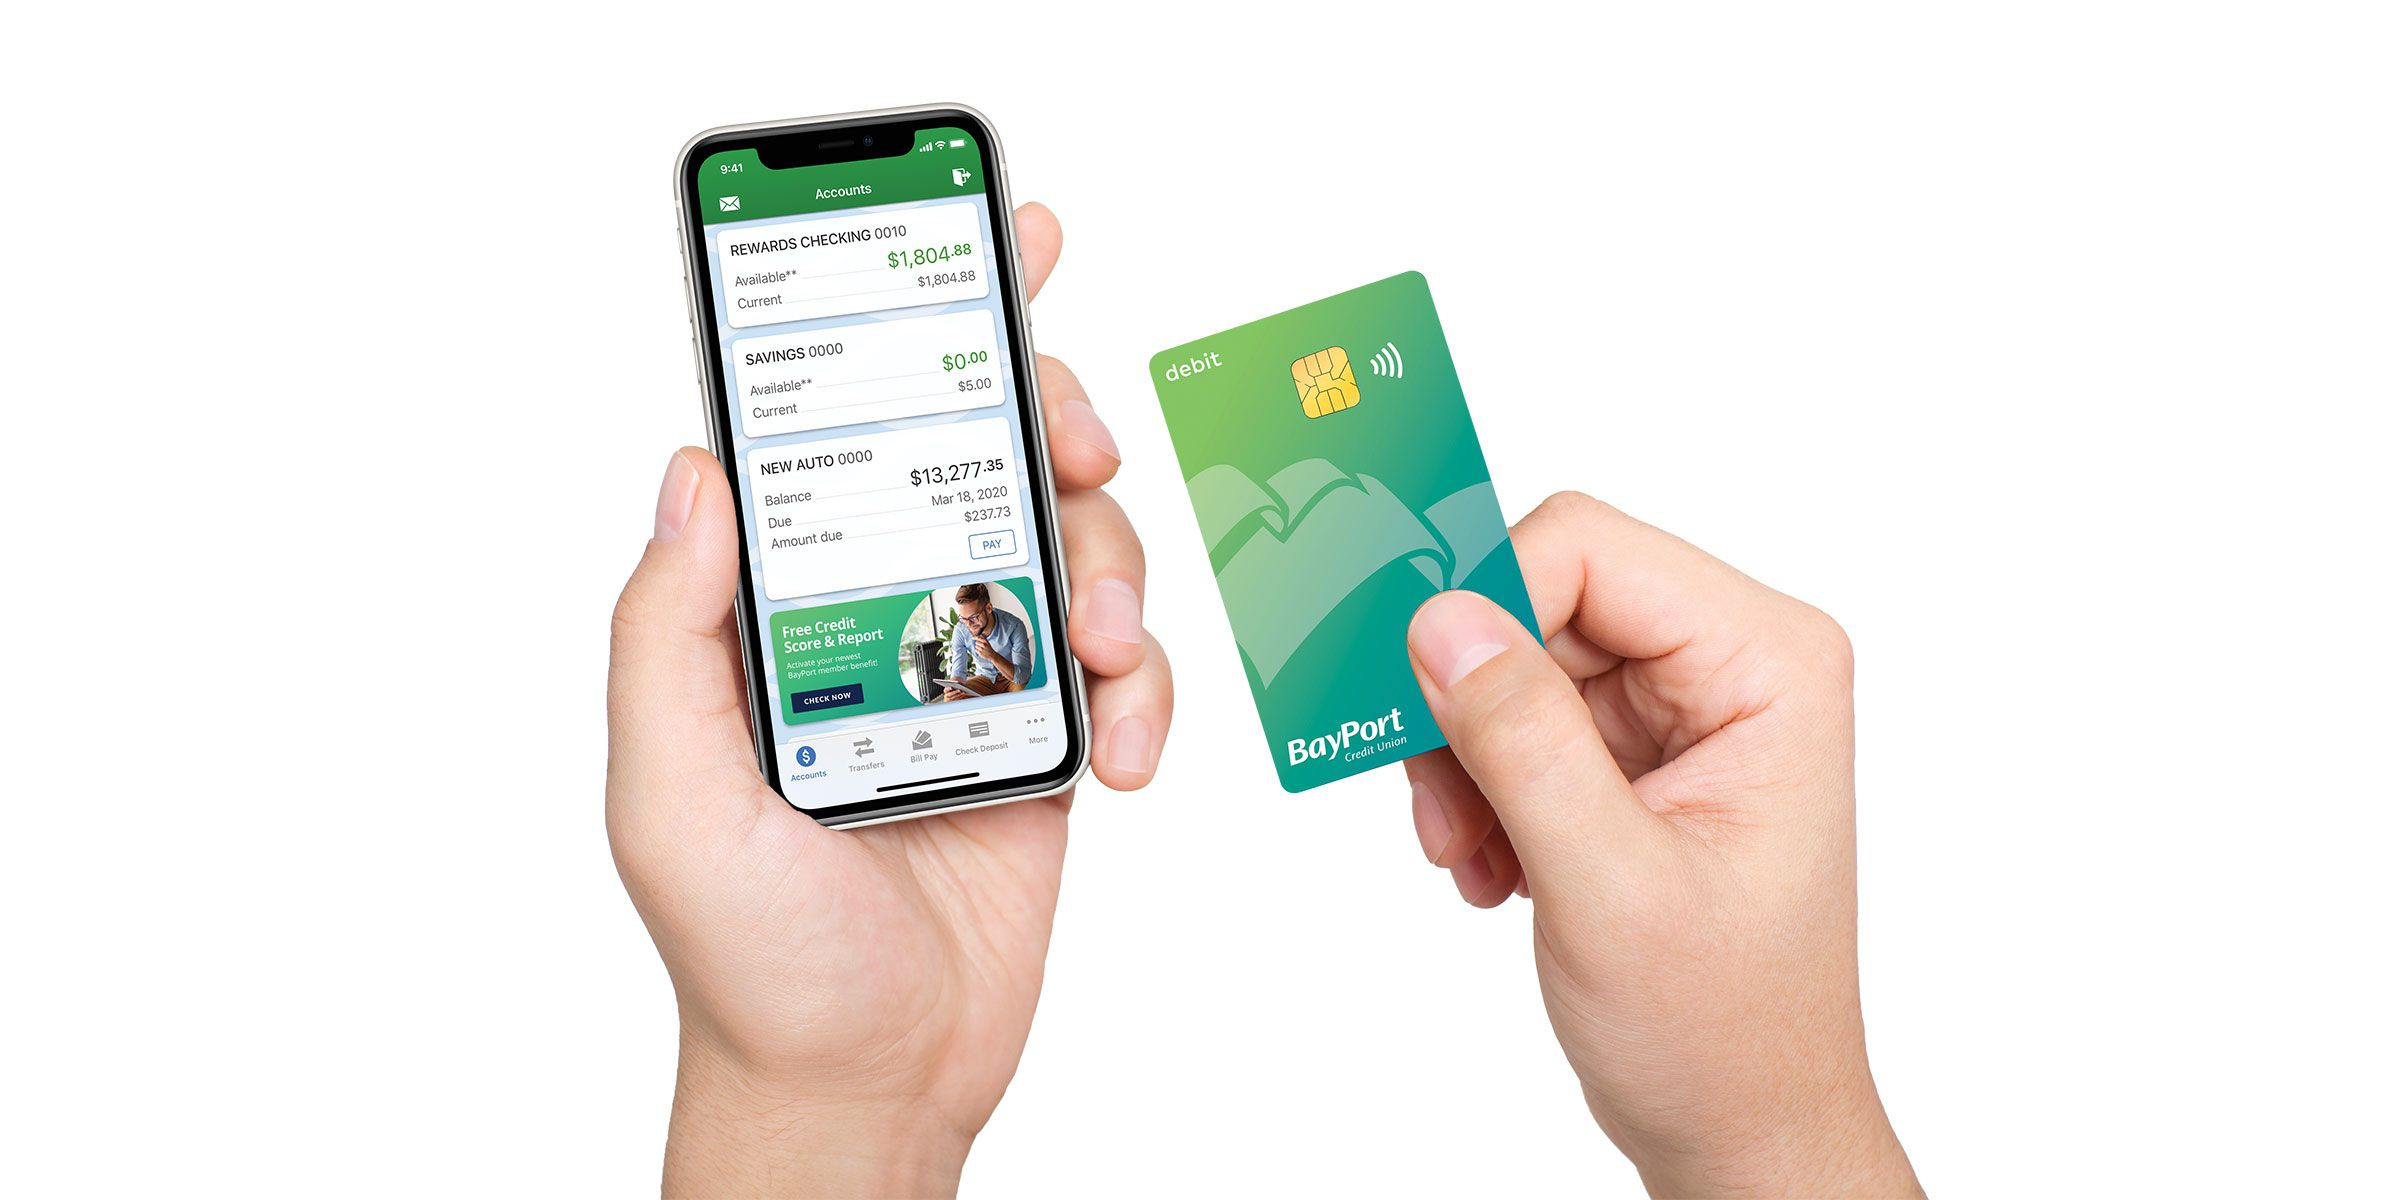 mobile banking and BayPort debit card